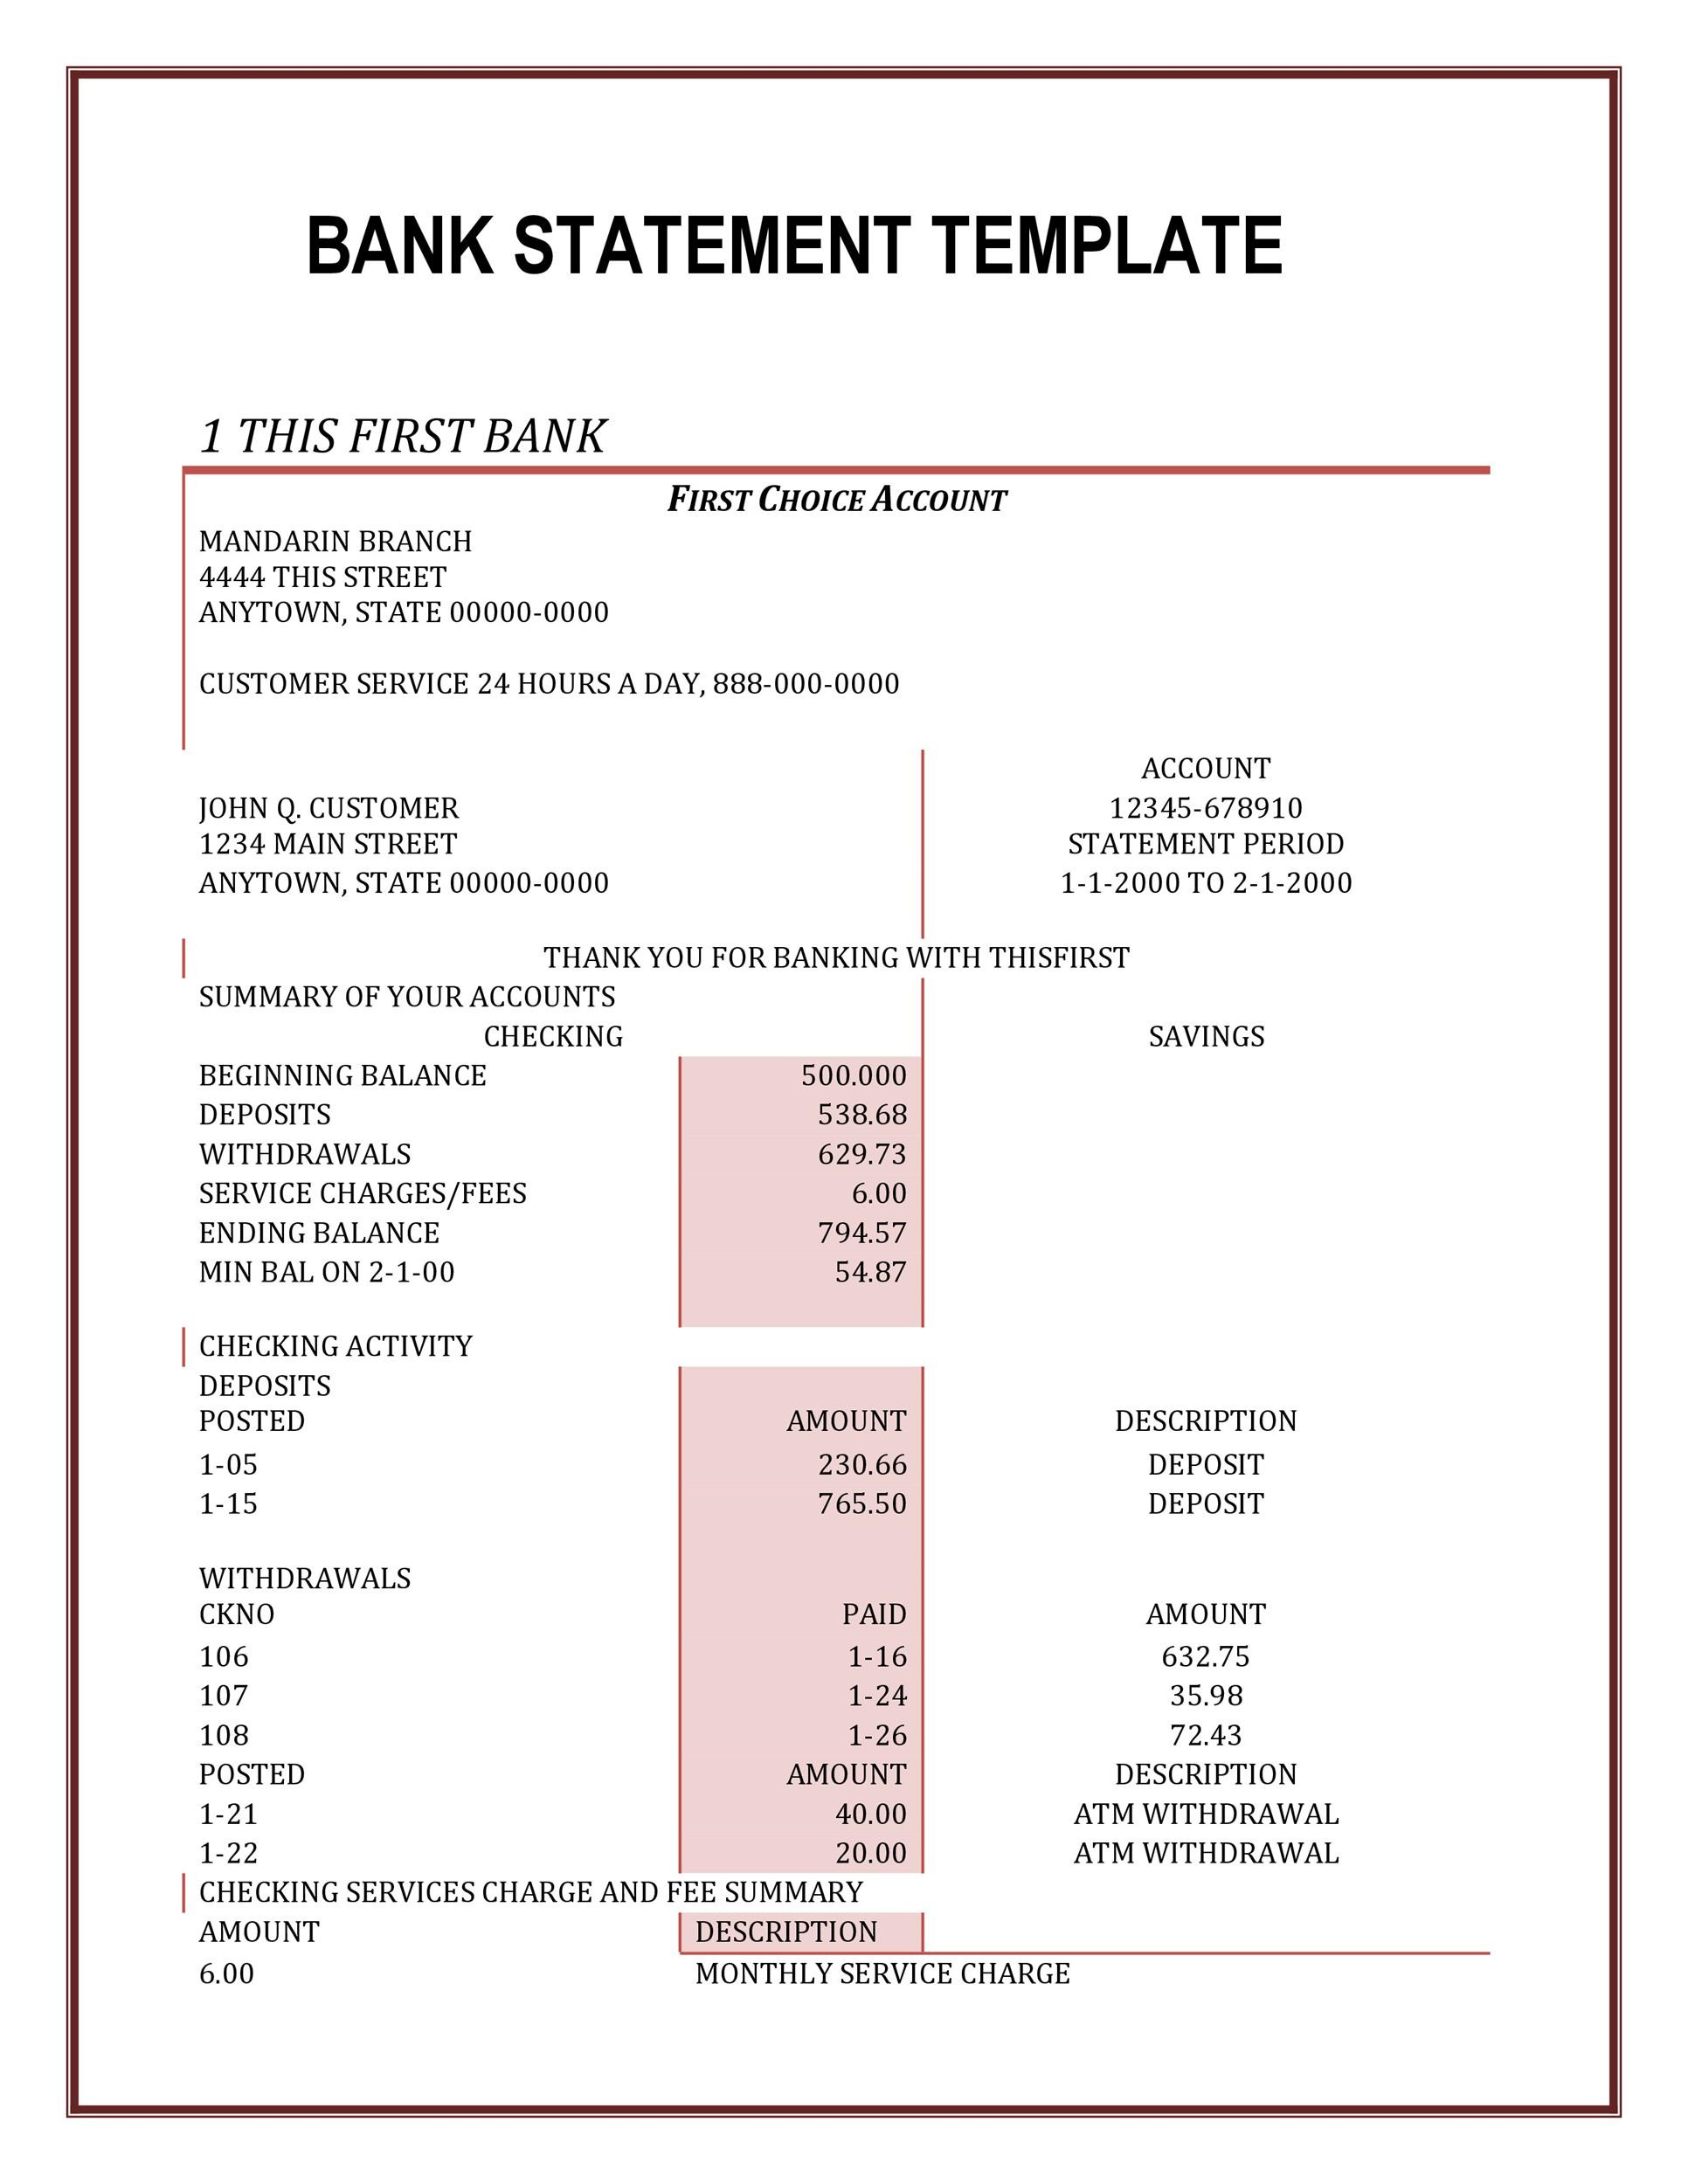 Natwest Bank Statement Example